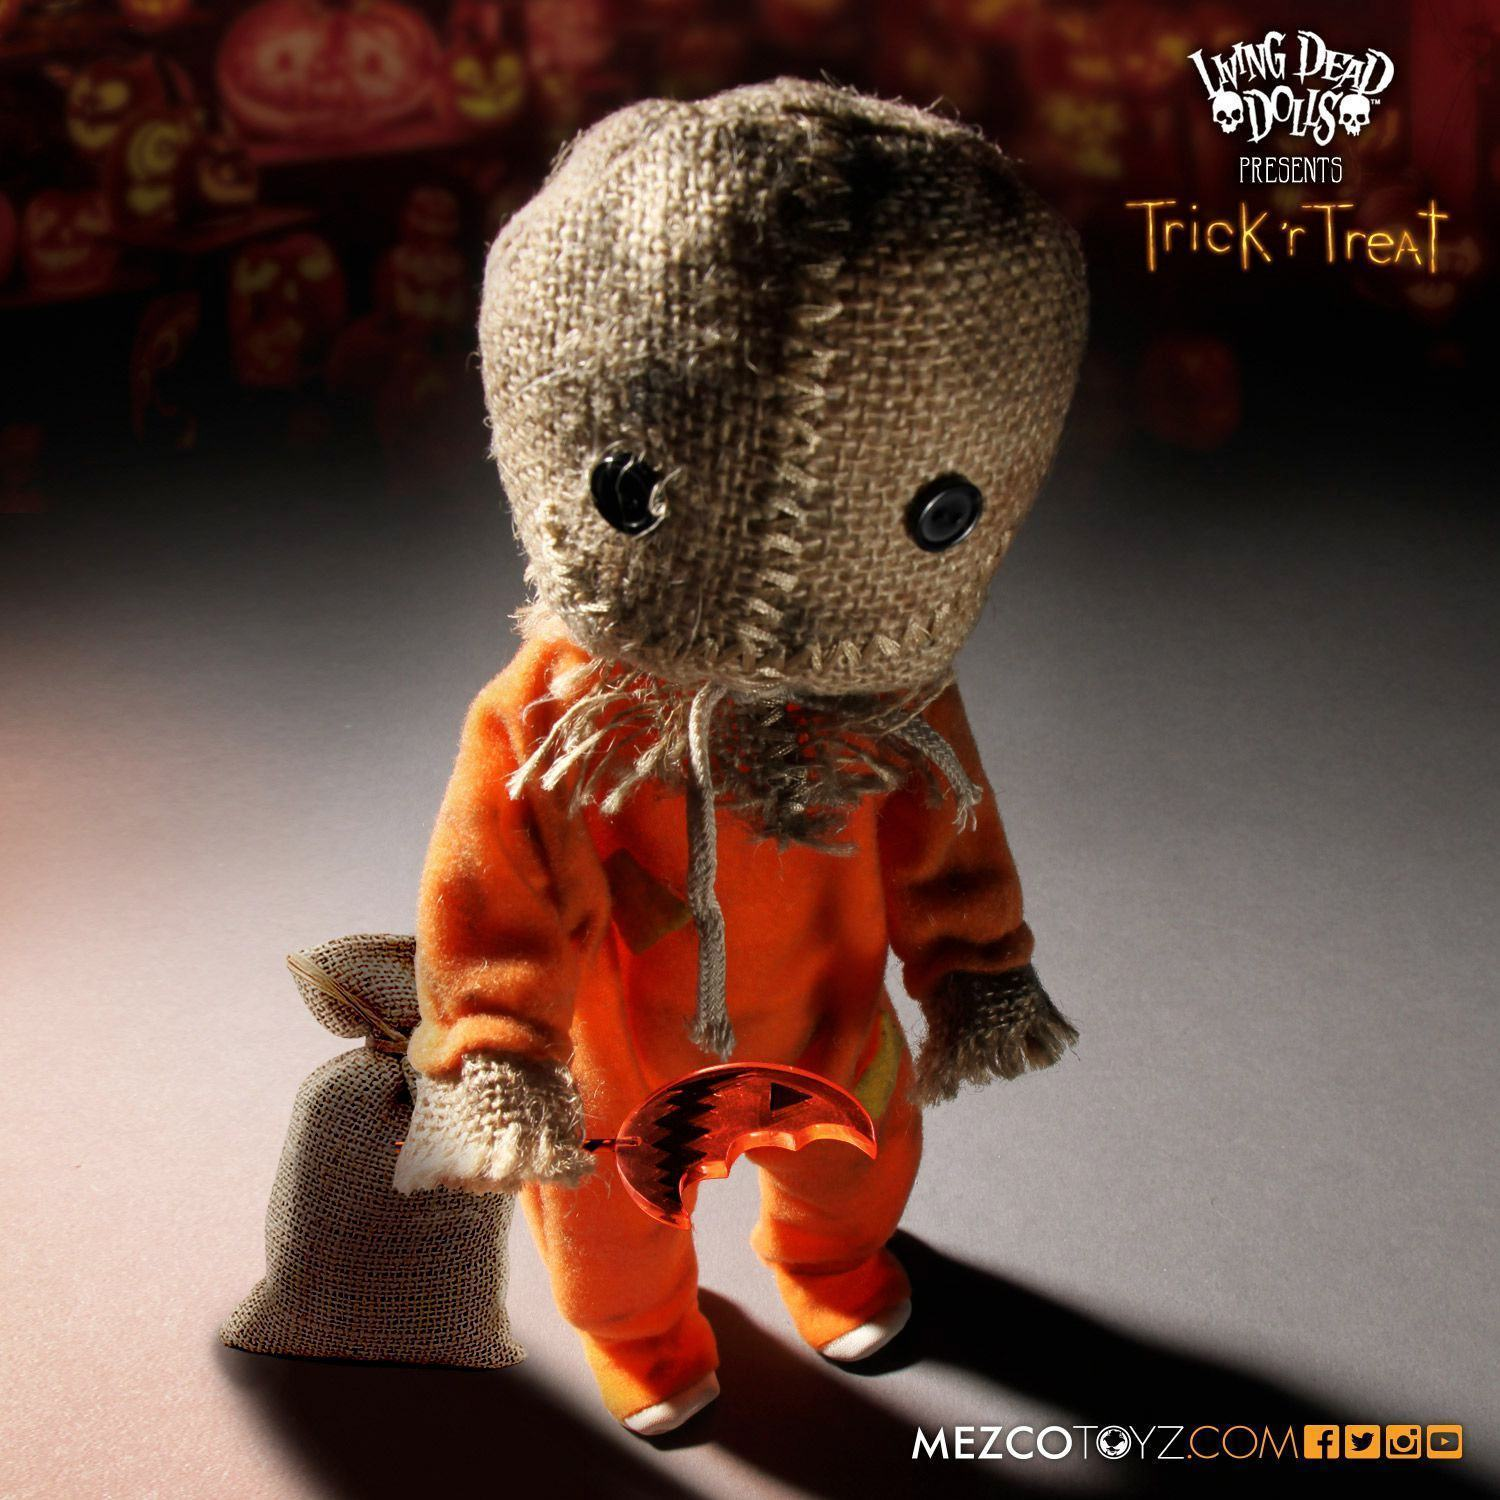 Living-Dead-Dolls-Presents-Trick-R-Treat-Sam-03